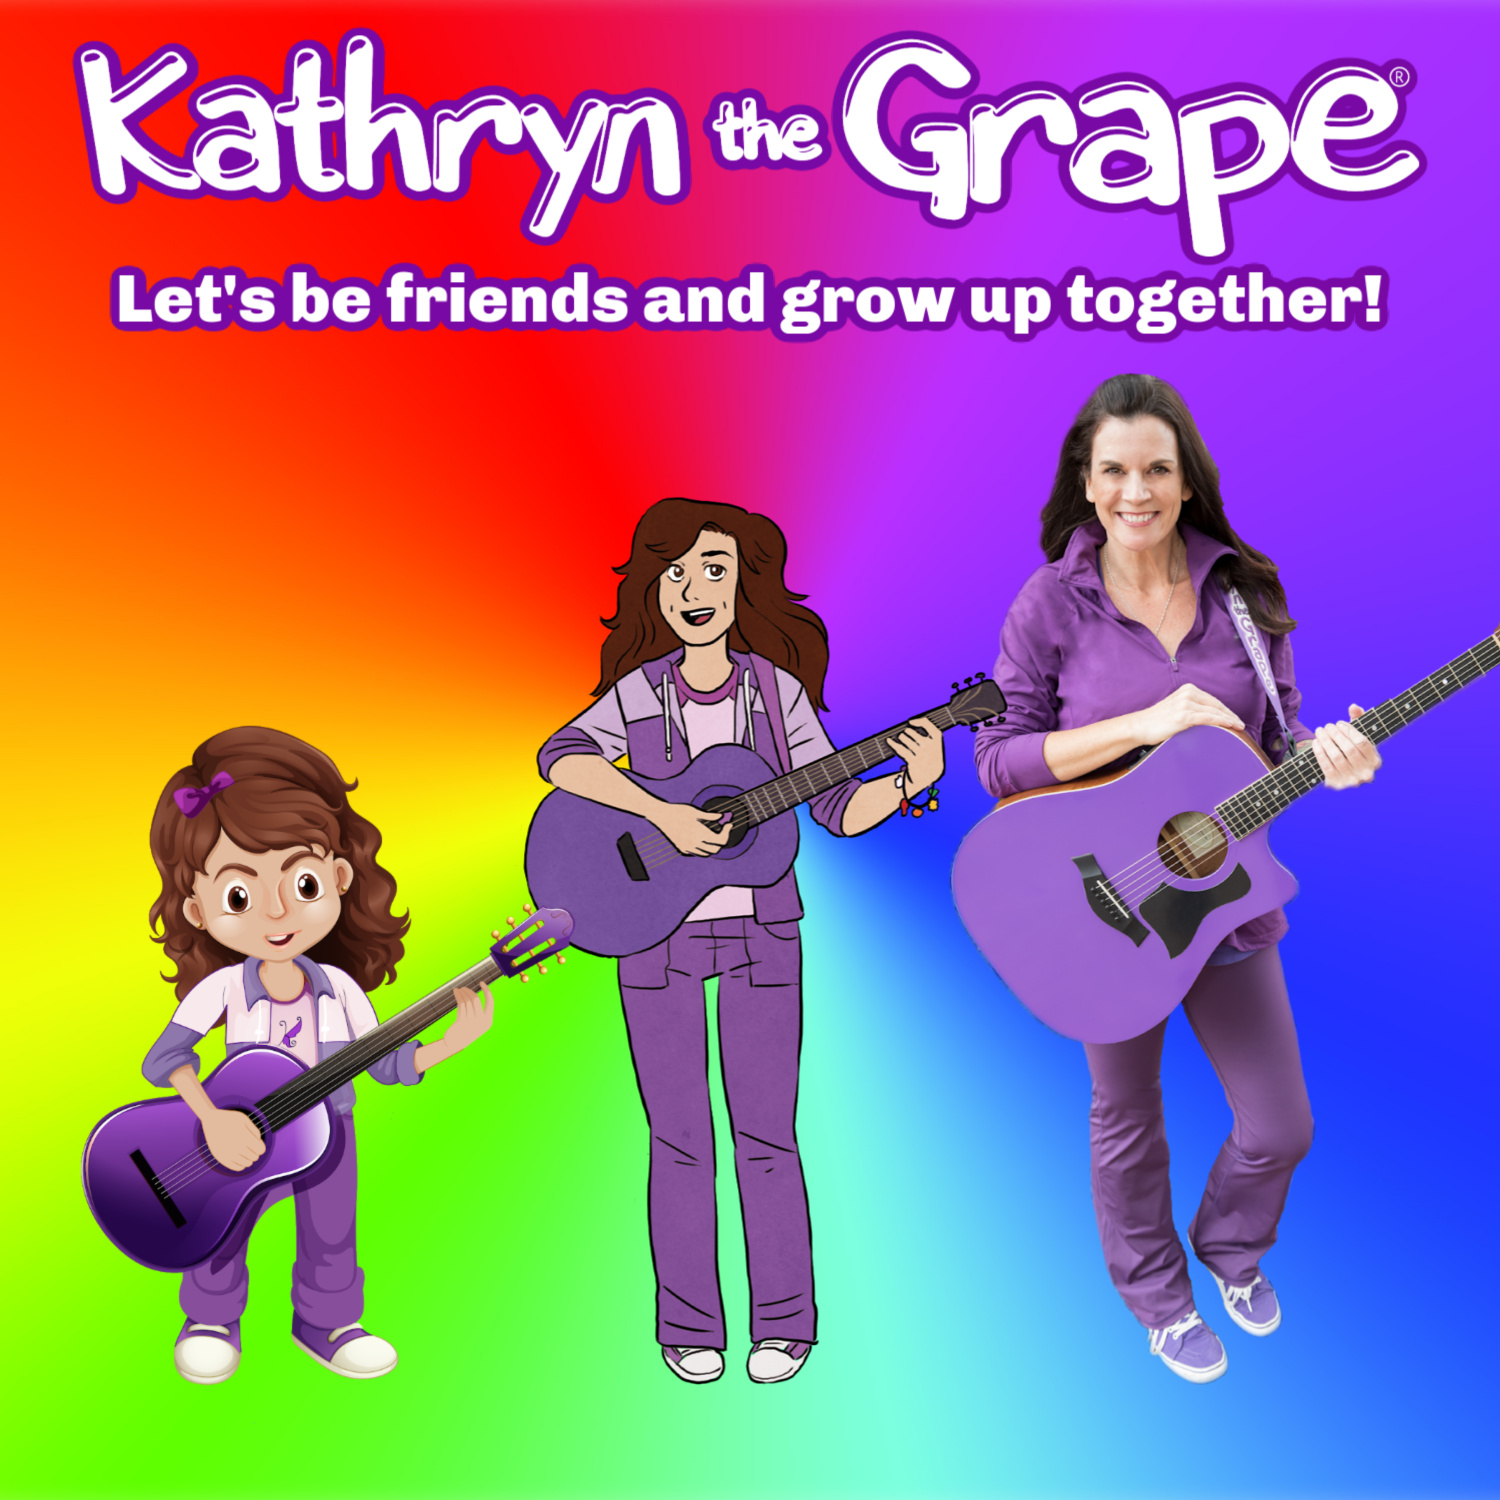 Kathryn the Grape let's Be Friends and Grow Together